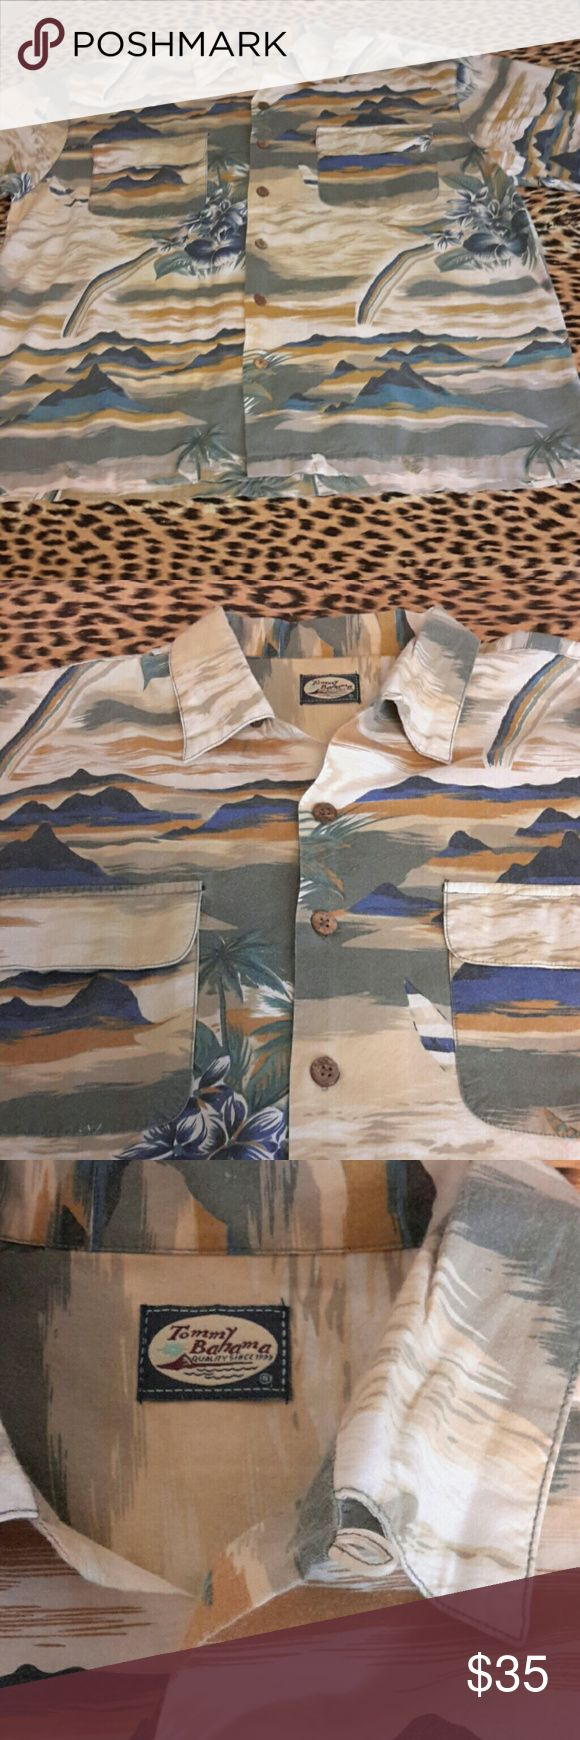 Tommy Bahama men's Hawaiian shirt. Sz. XL Tommy Bahama men's Hawaiian shirt. Sz. XL. Nice cond. No stains... no rips. It does not have the size tag, but it is an XL for sure. All else good. Original Tommy B. Not sure if material is part silk, that tag was on size label, fell off. But it is really soft material.  XL for sure 100%. Tommy Bahama Shirts Tees - Short Sleeve